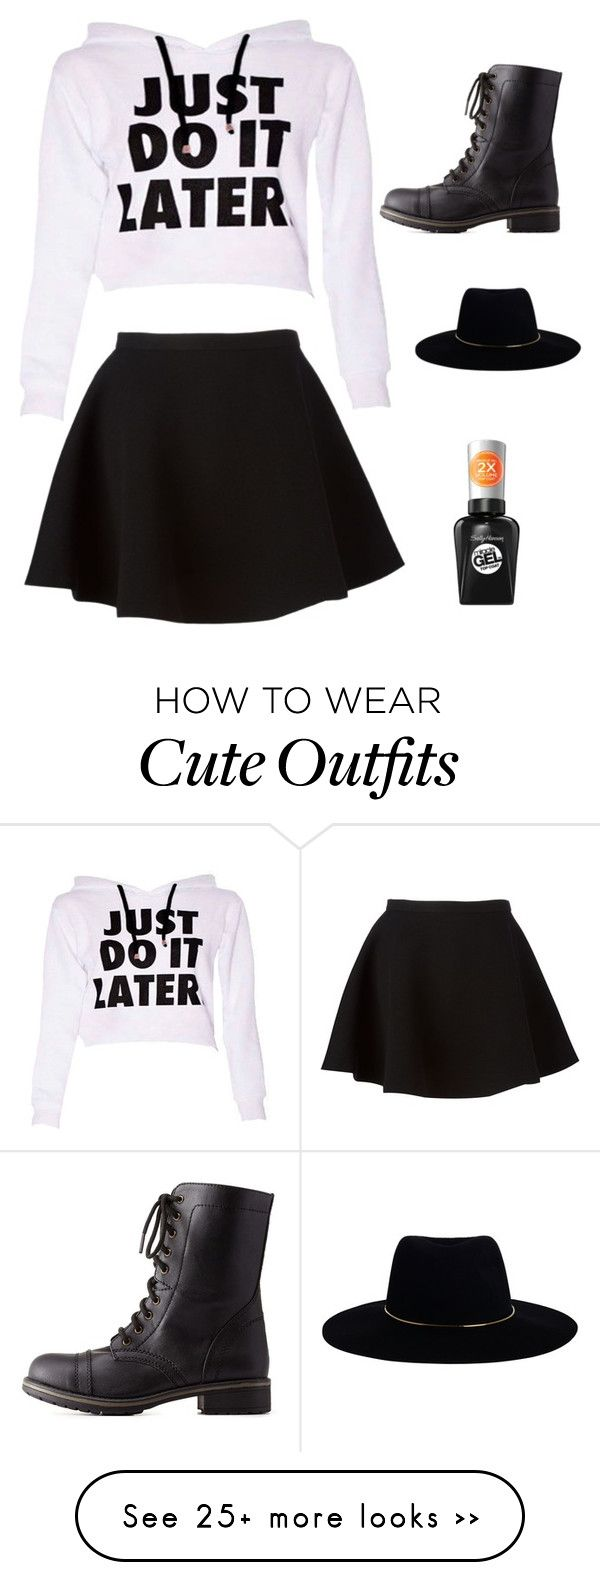 """Cute outfits"" by eileenamathews on Polyvore featuring Neil Barrett, Charlotte Russe, Zimmermann and Sally Hansen"